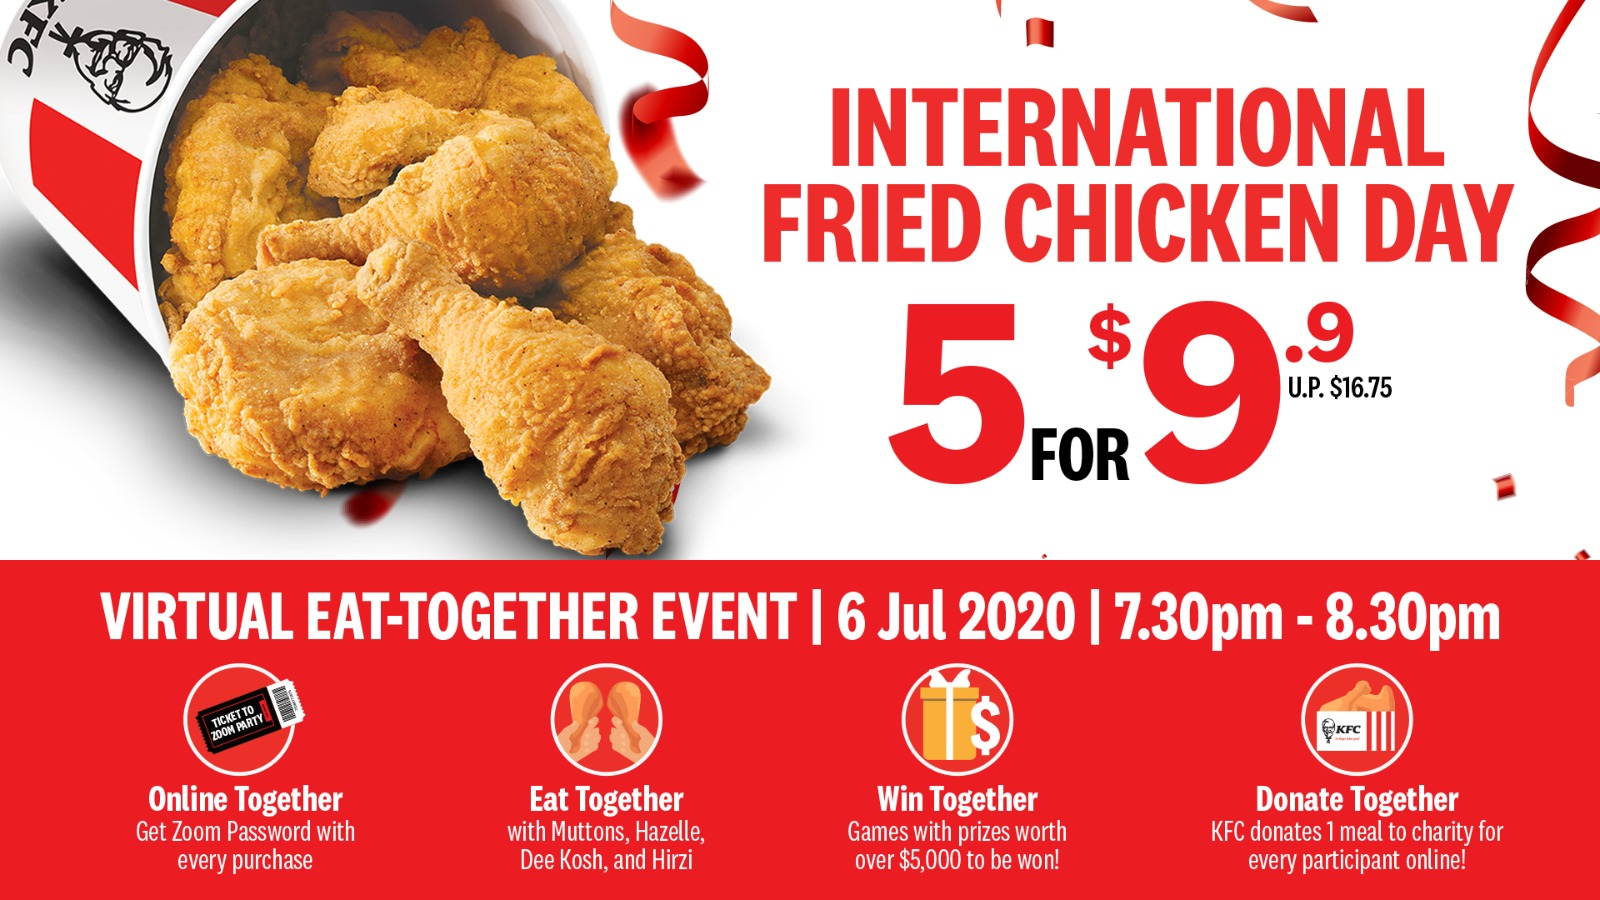 KFC Singapore's International Fried Chicken Day Virtual Eat-together | 6 July Mon, 7.30pm